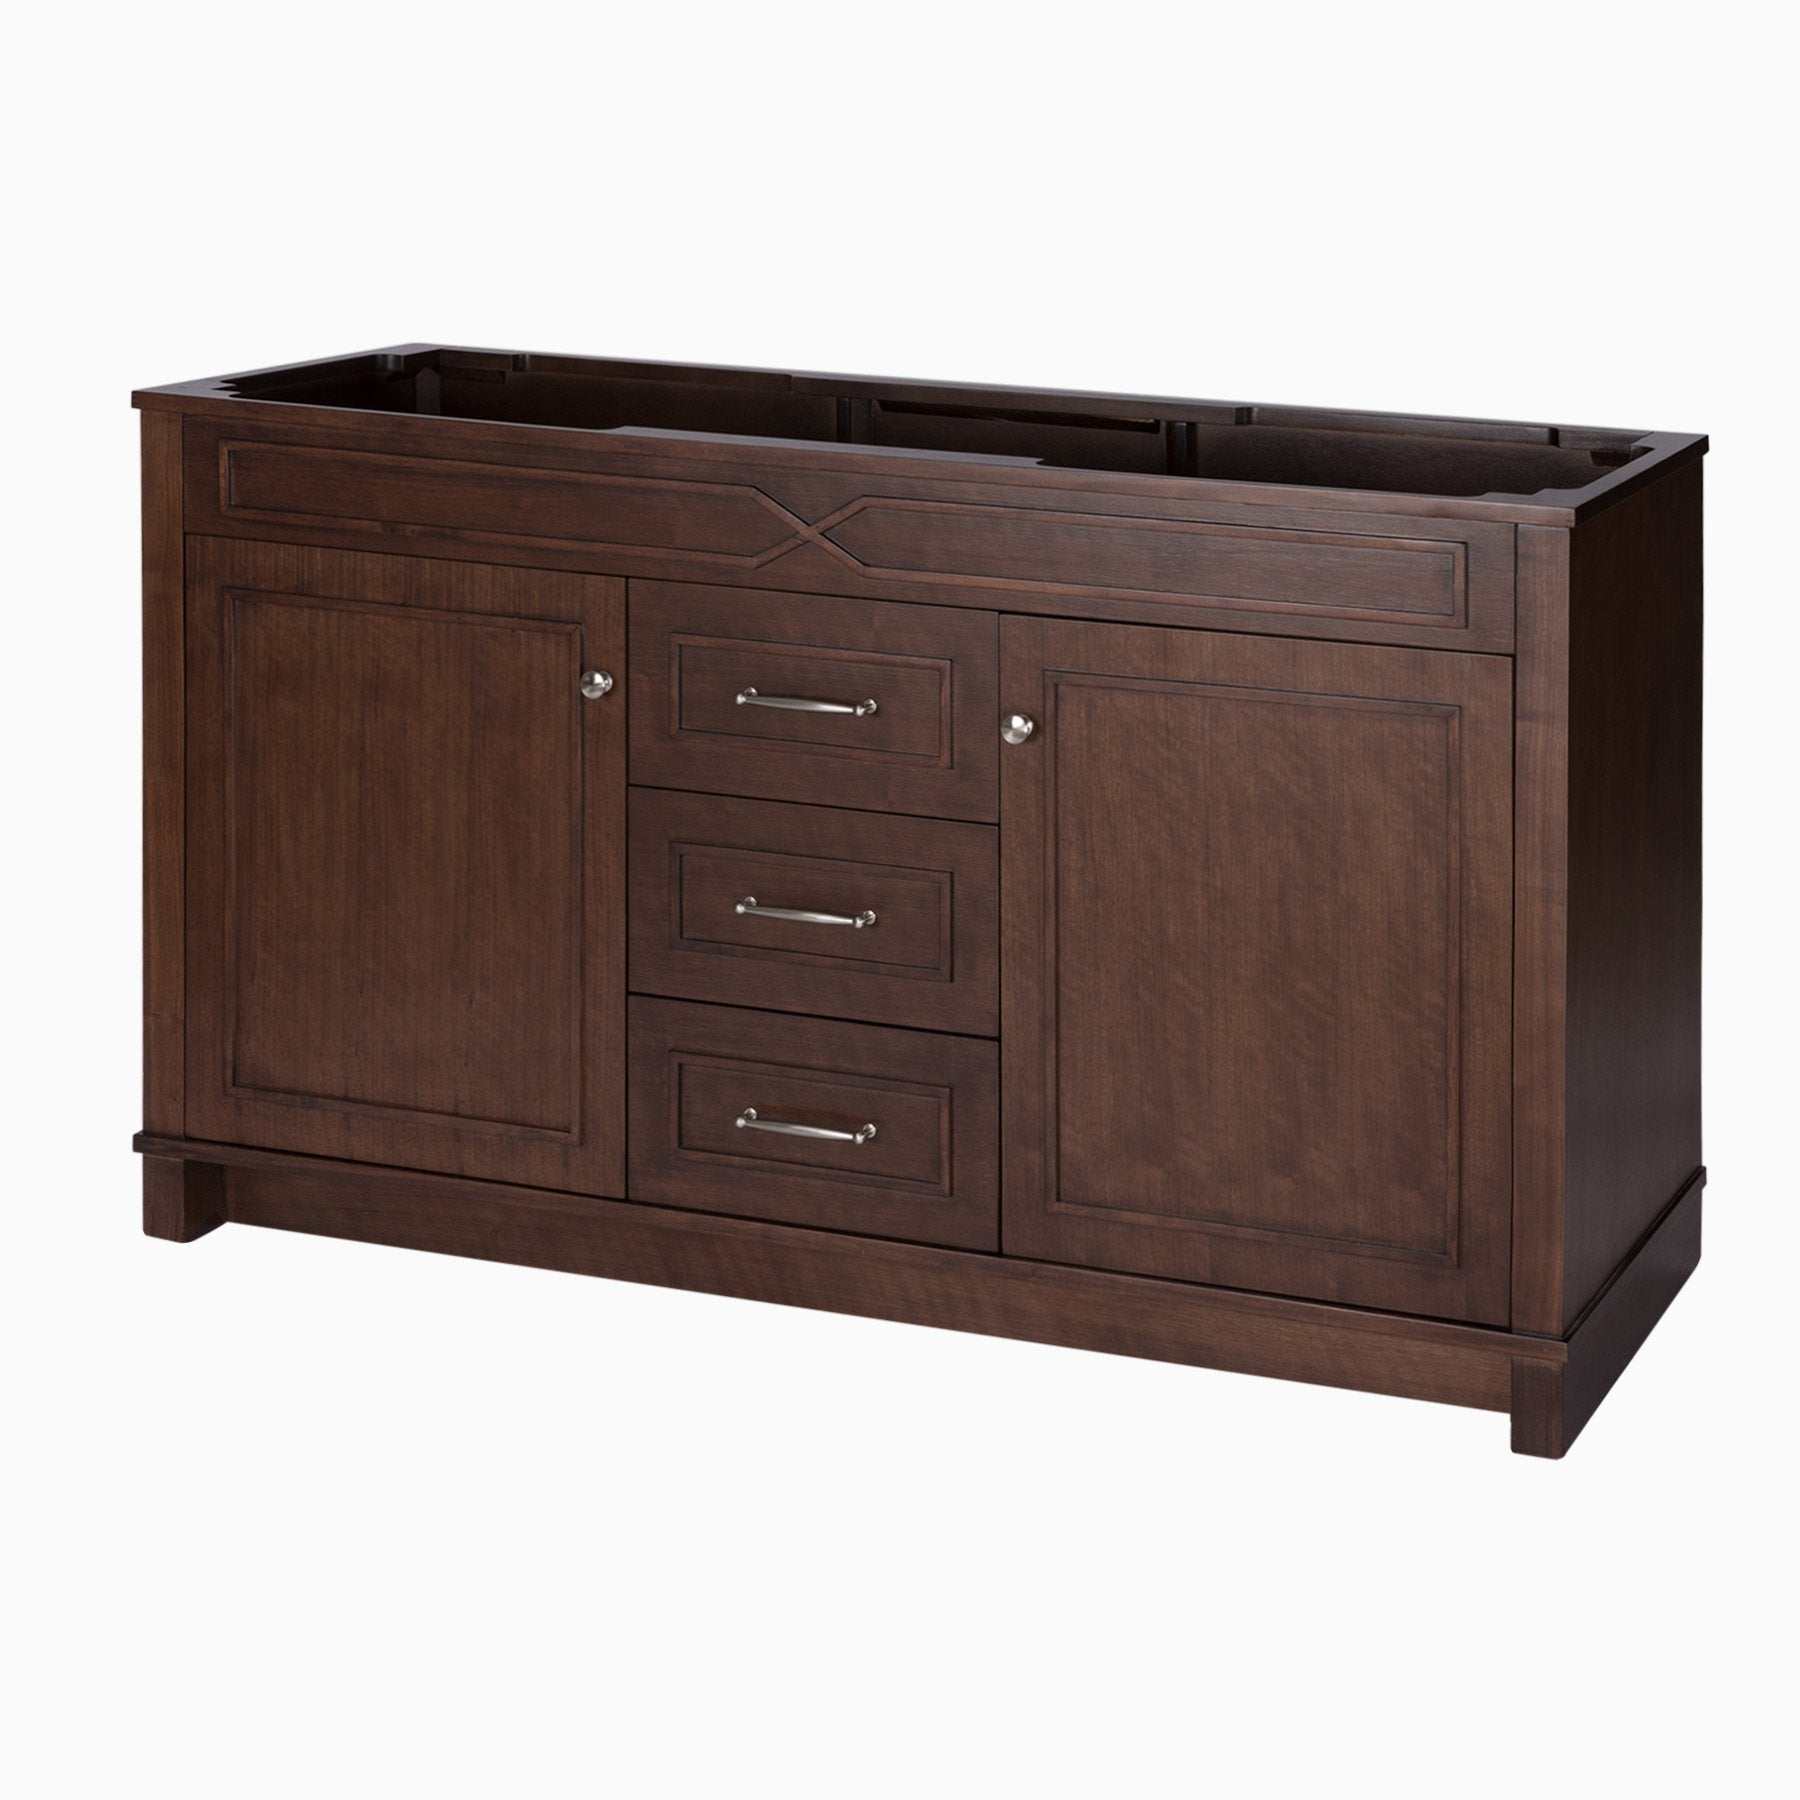 Organize with maykke abigail 60 bathroom vanity cabinet in birch wood american walnut finish double floor mounted brown vanity base cabinet only ysa1156001